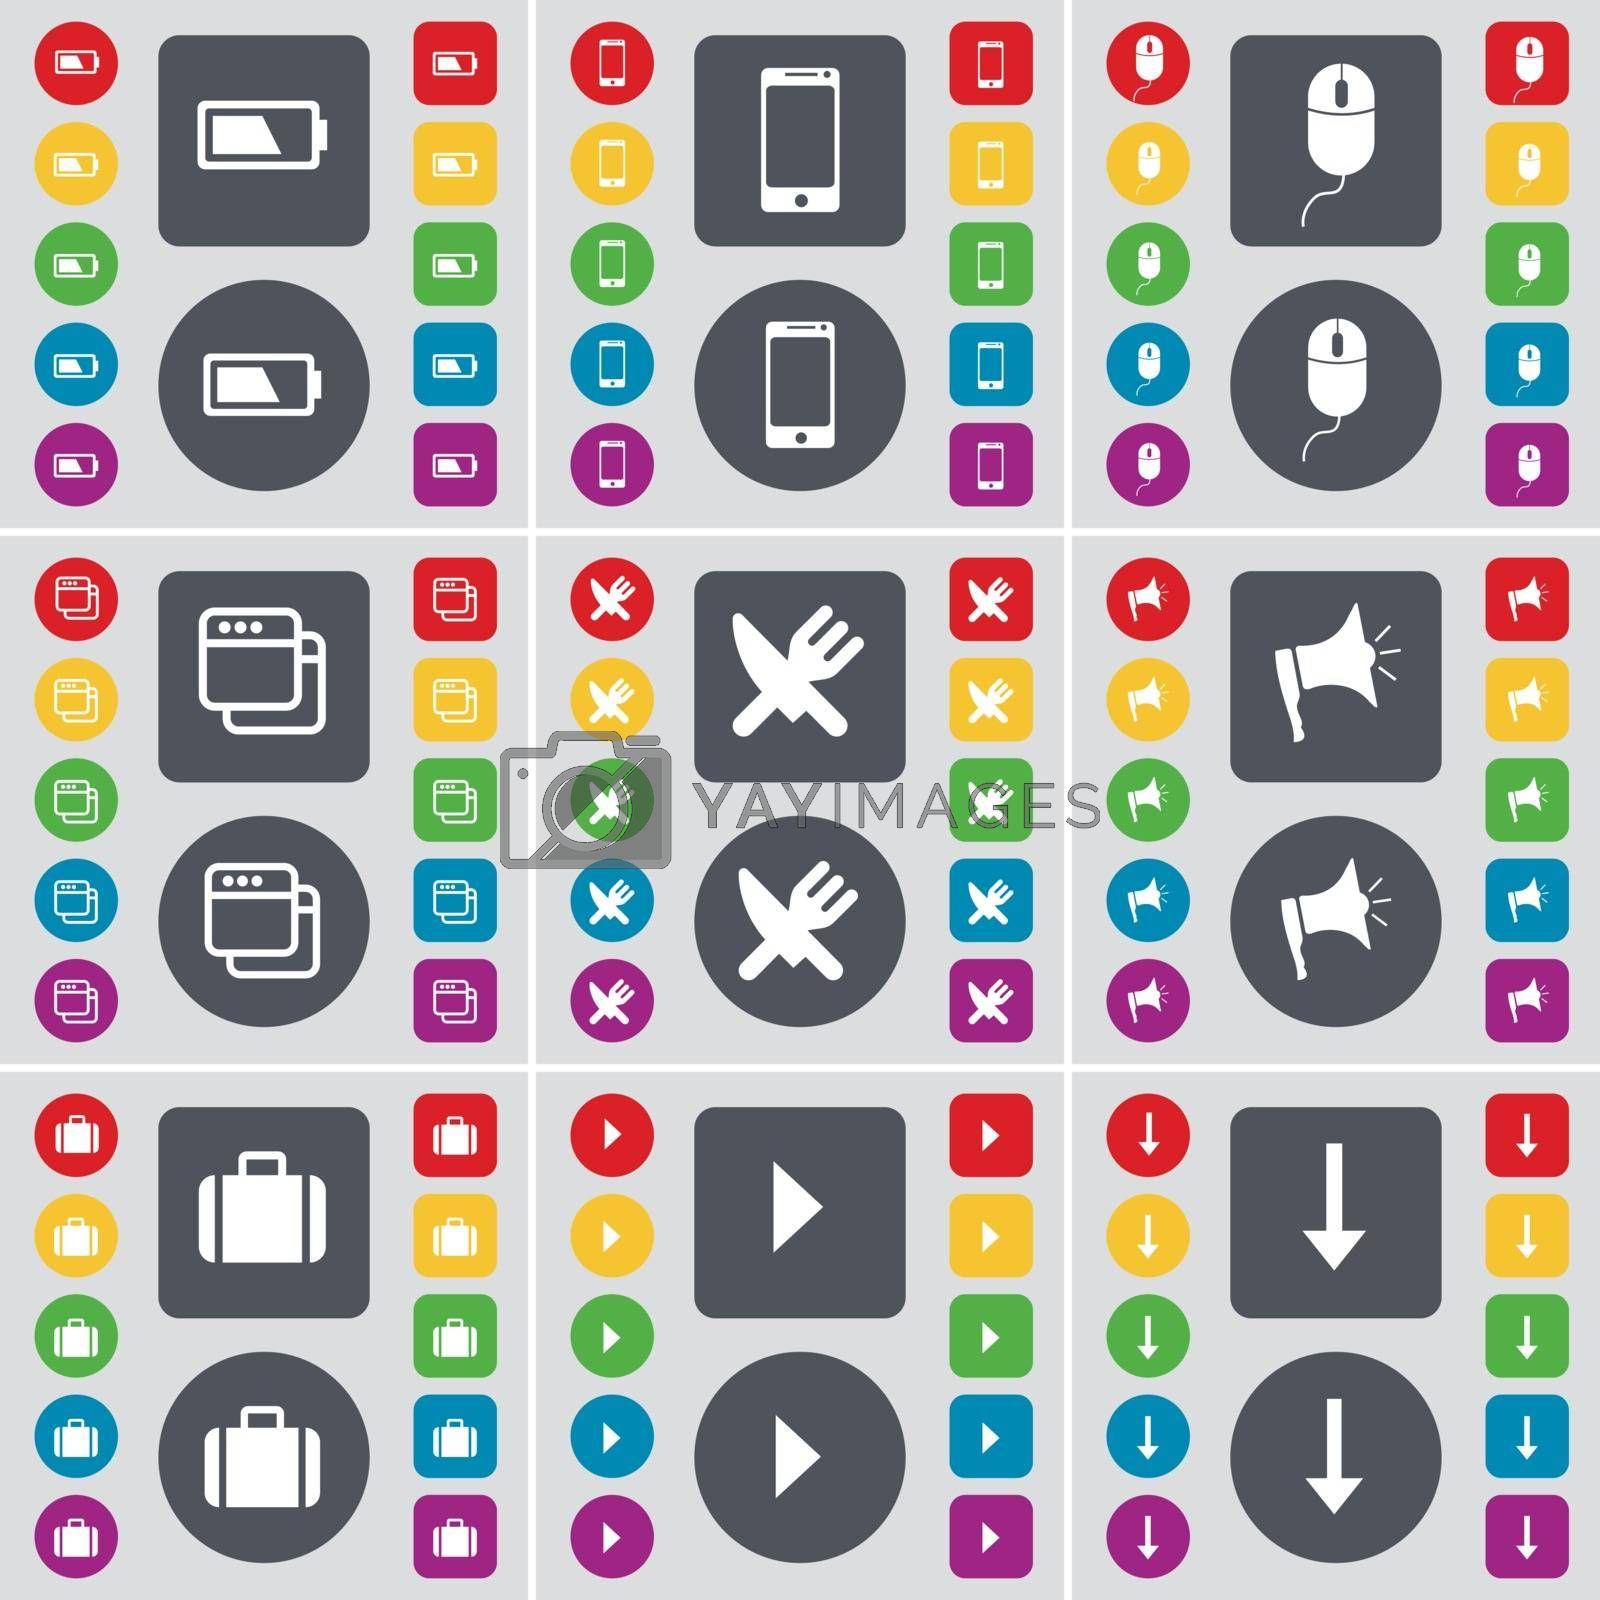 Royalty free image of Battery, Smartphone, Mouse, Window, Fork and knife, Megaphone, Suitcase, Media play, Arrow down icon symbol. A large set of flat, colored buttons for your design. Vector by serhii_lohvyniuk